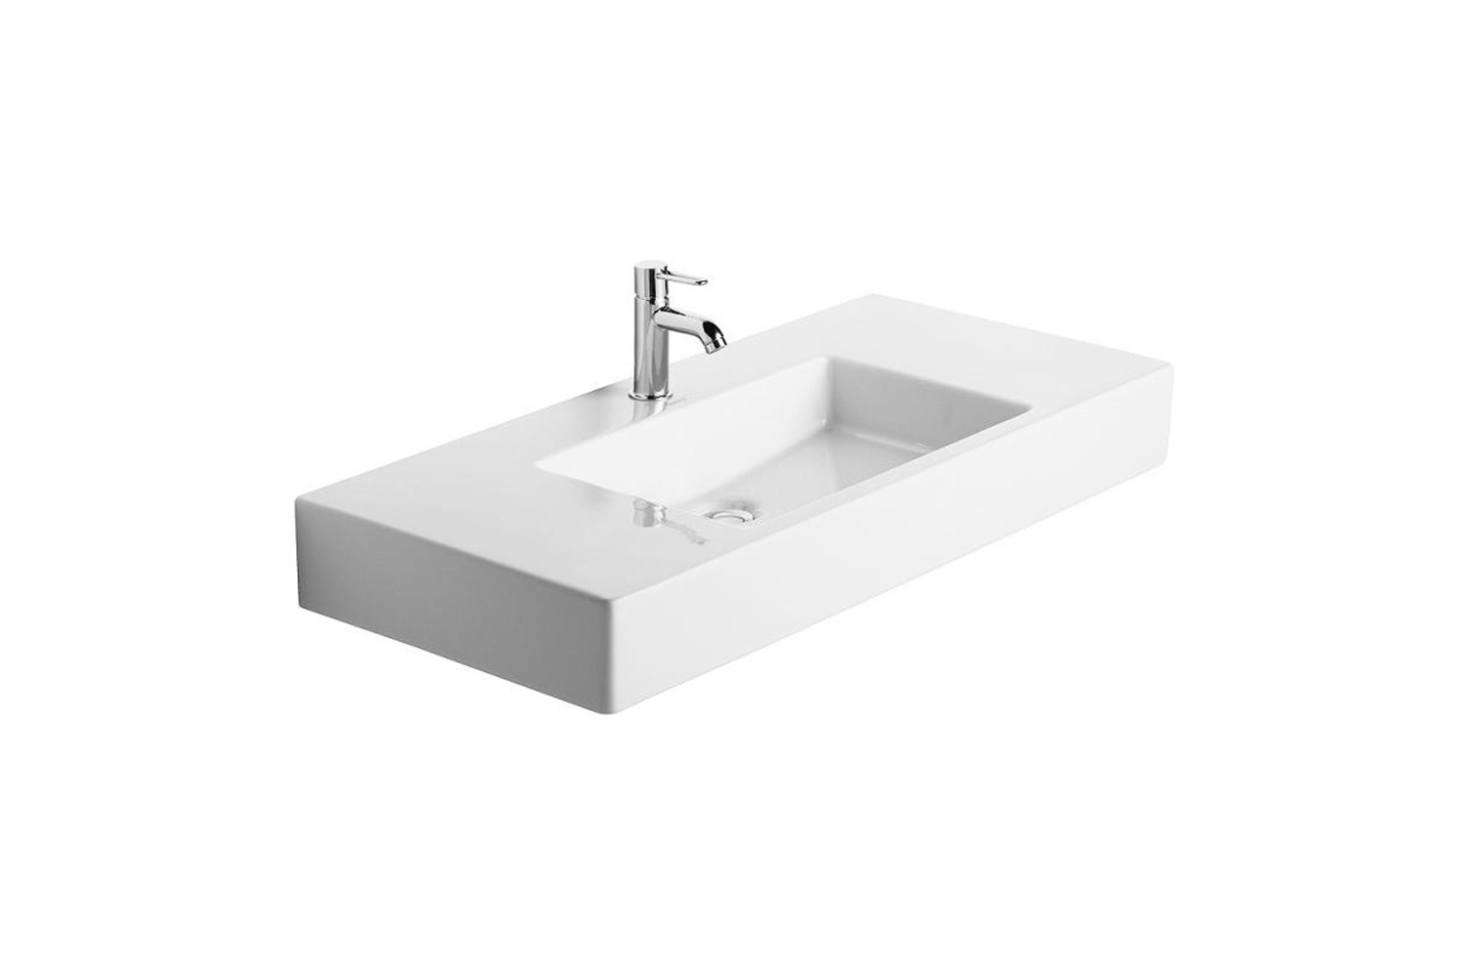 The basin is the Duravit Vero (03298500001) Bathroom Sink is $696.94 at Amazon.